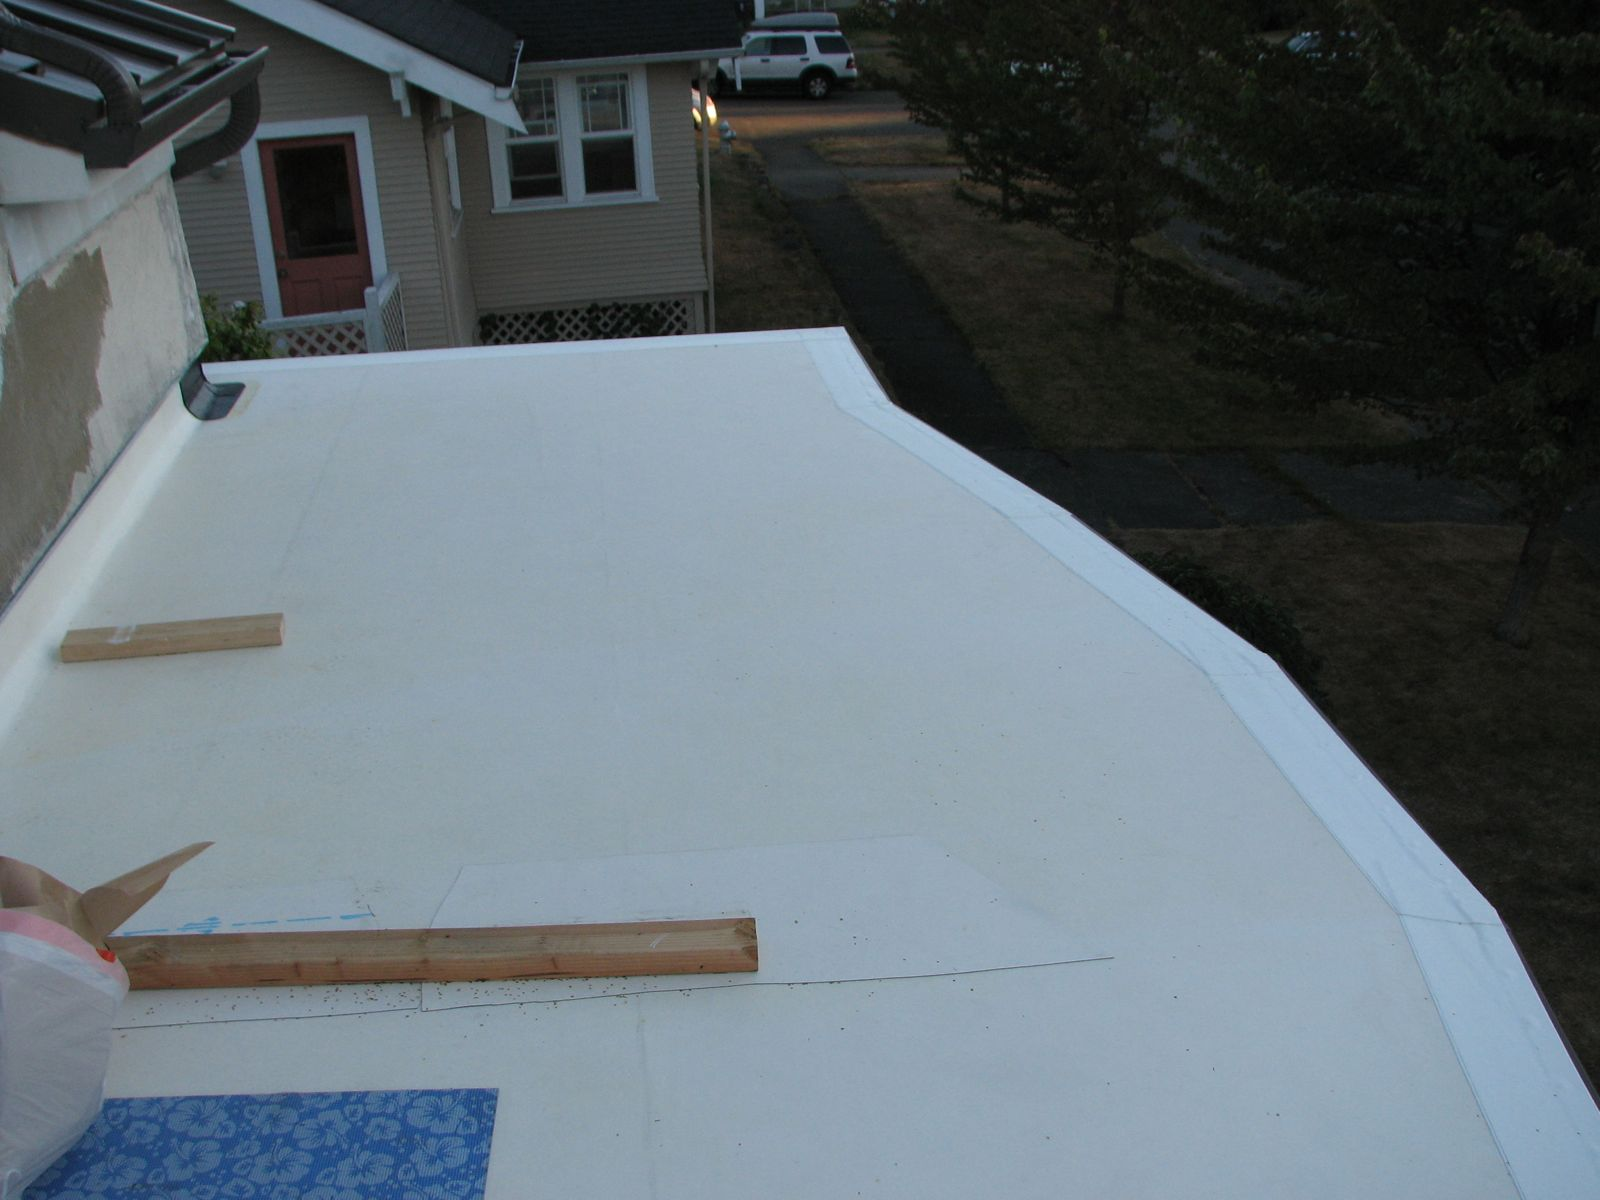 Balcony Part Ii Or Wood Deck Over Epdm Deck On Sleepers